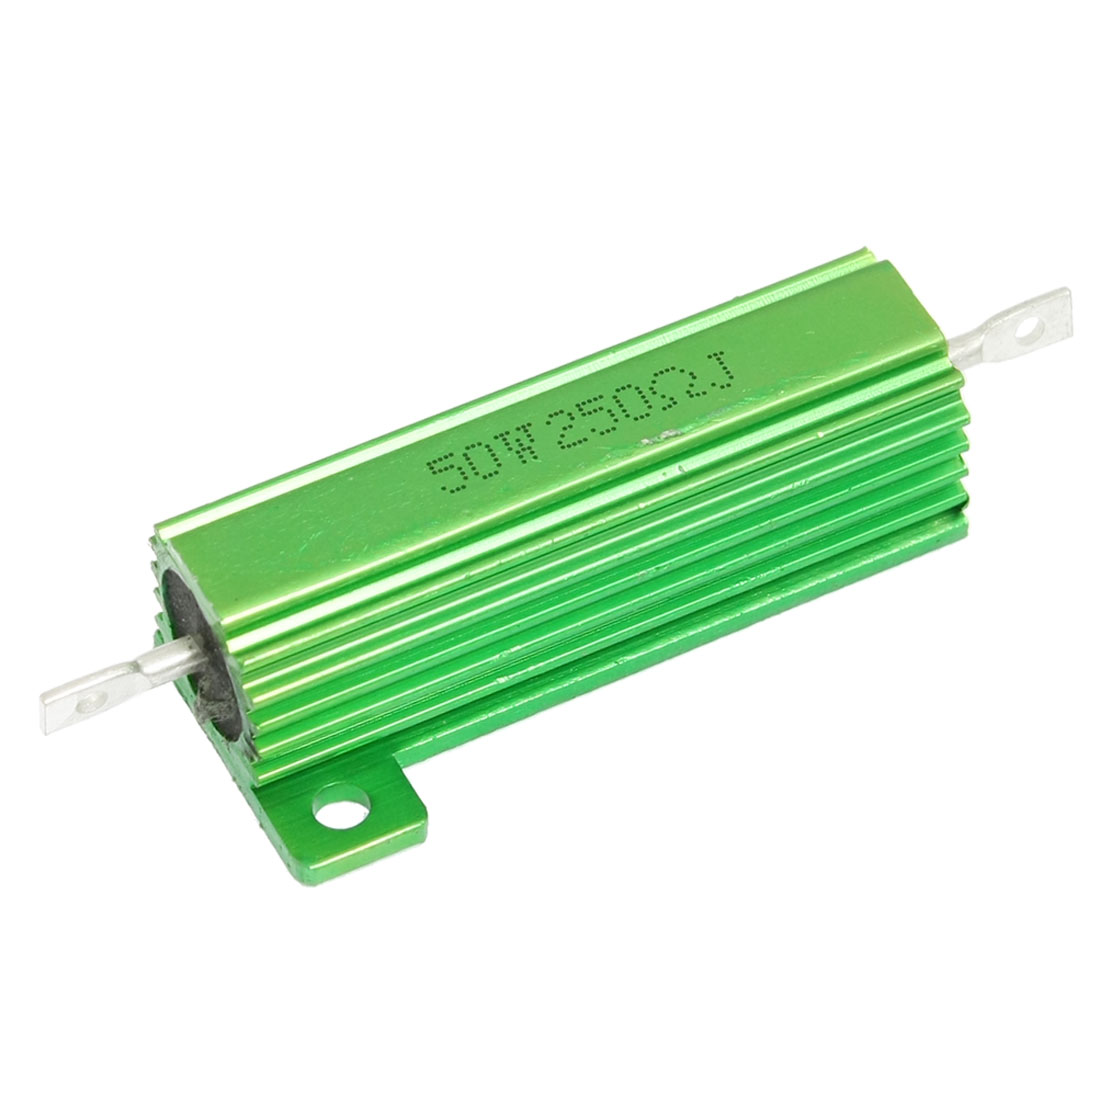 250 Ohm 50W Green Aluminum Chassis Mounted Housed Wirewound Resistor